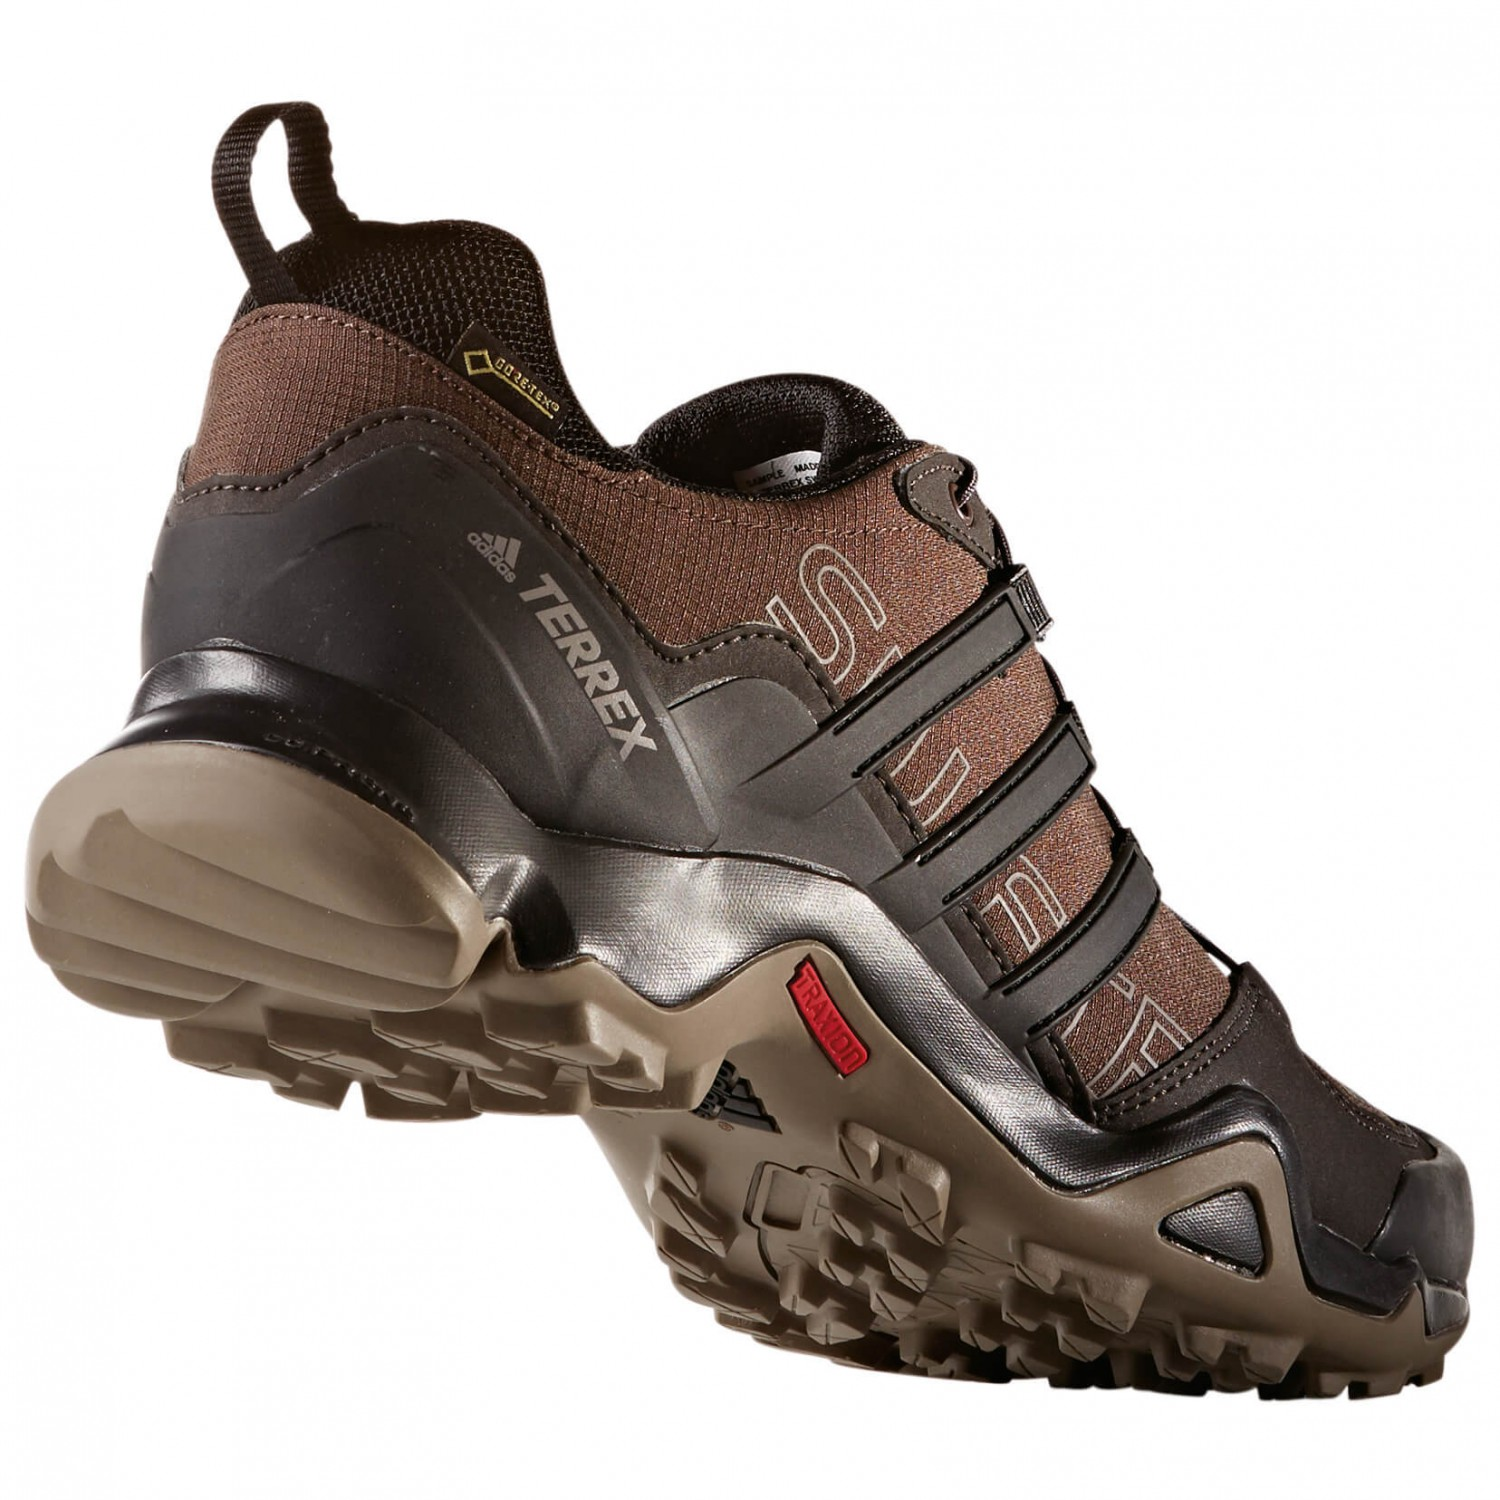 f60b9cd0a1987 Buy 2 OFF ANY adidas men s terrex swift r gtx CASE AND GET 70% OFF!